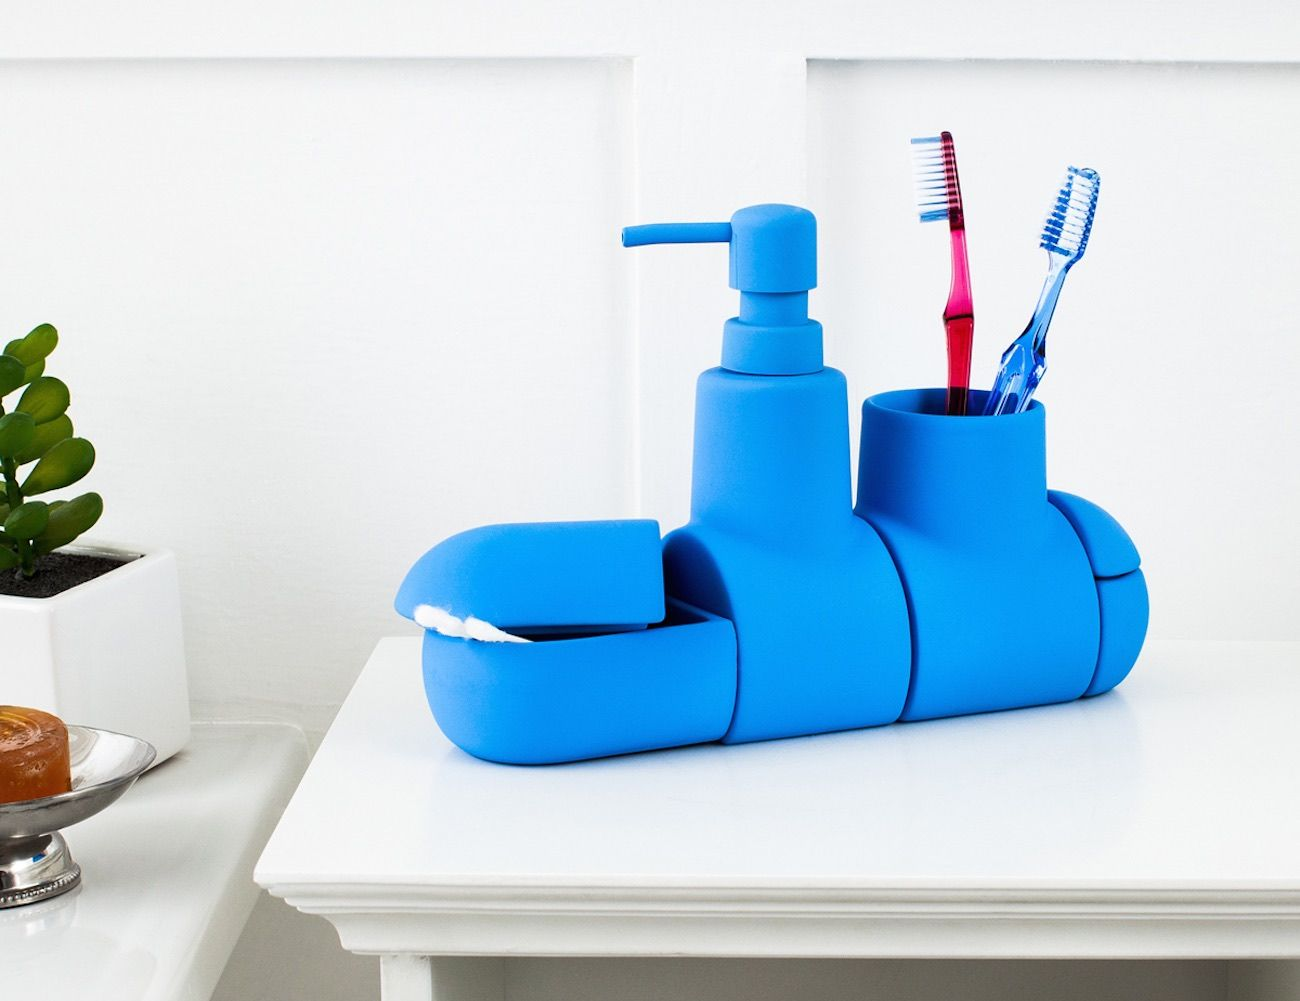 Submarino Bathroom Set by Hector Serrano for Seletti | Bathroom ...